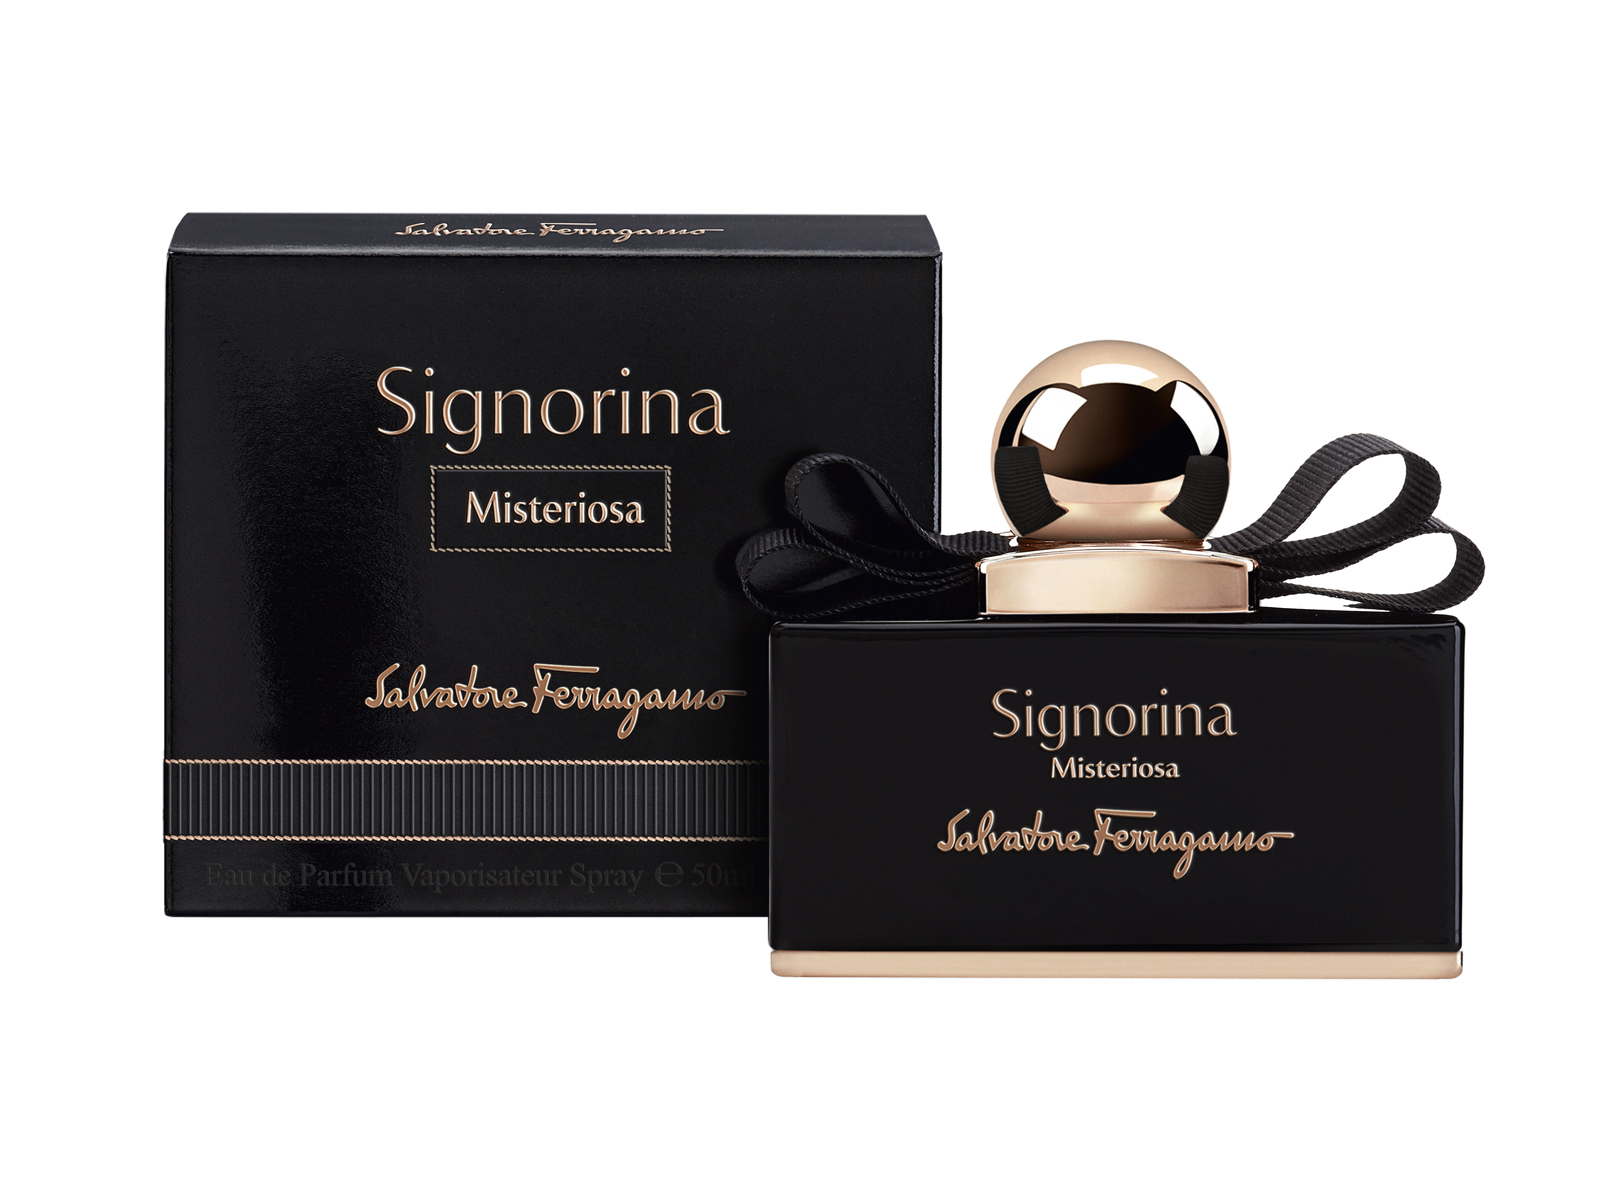 Date-Night Essential: Signorina Misteriosa by Salvatore Ferragamo